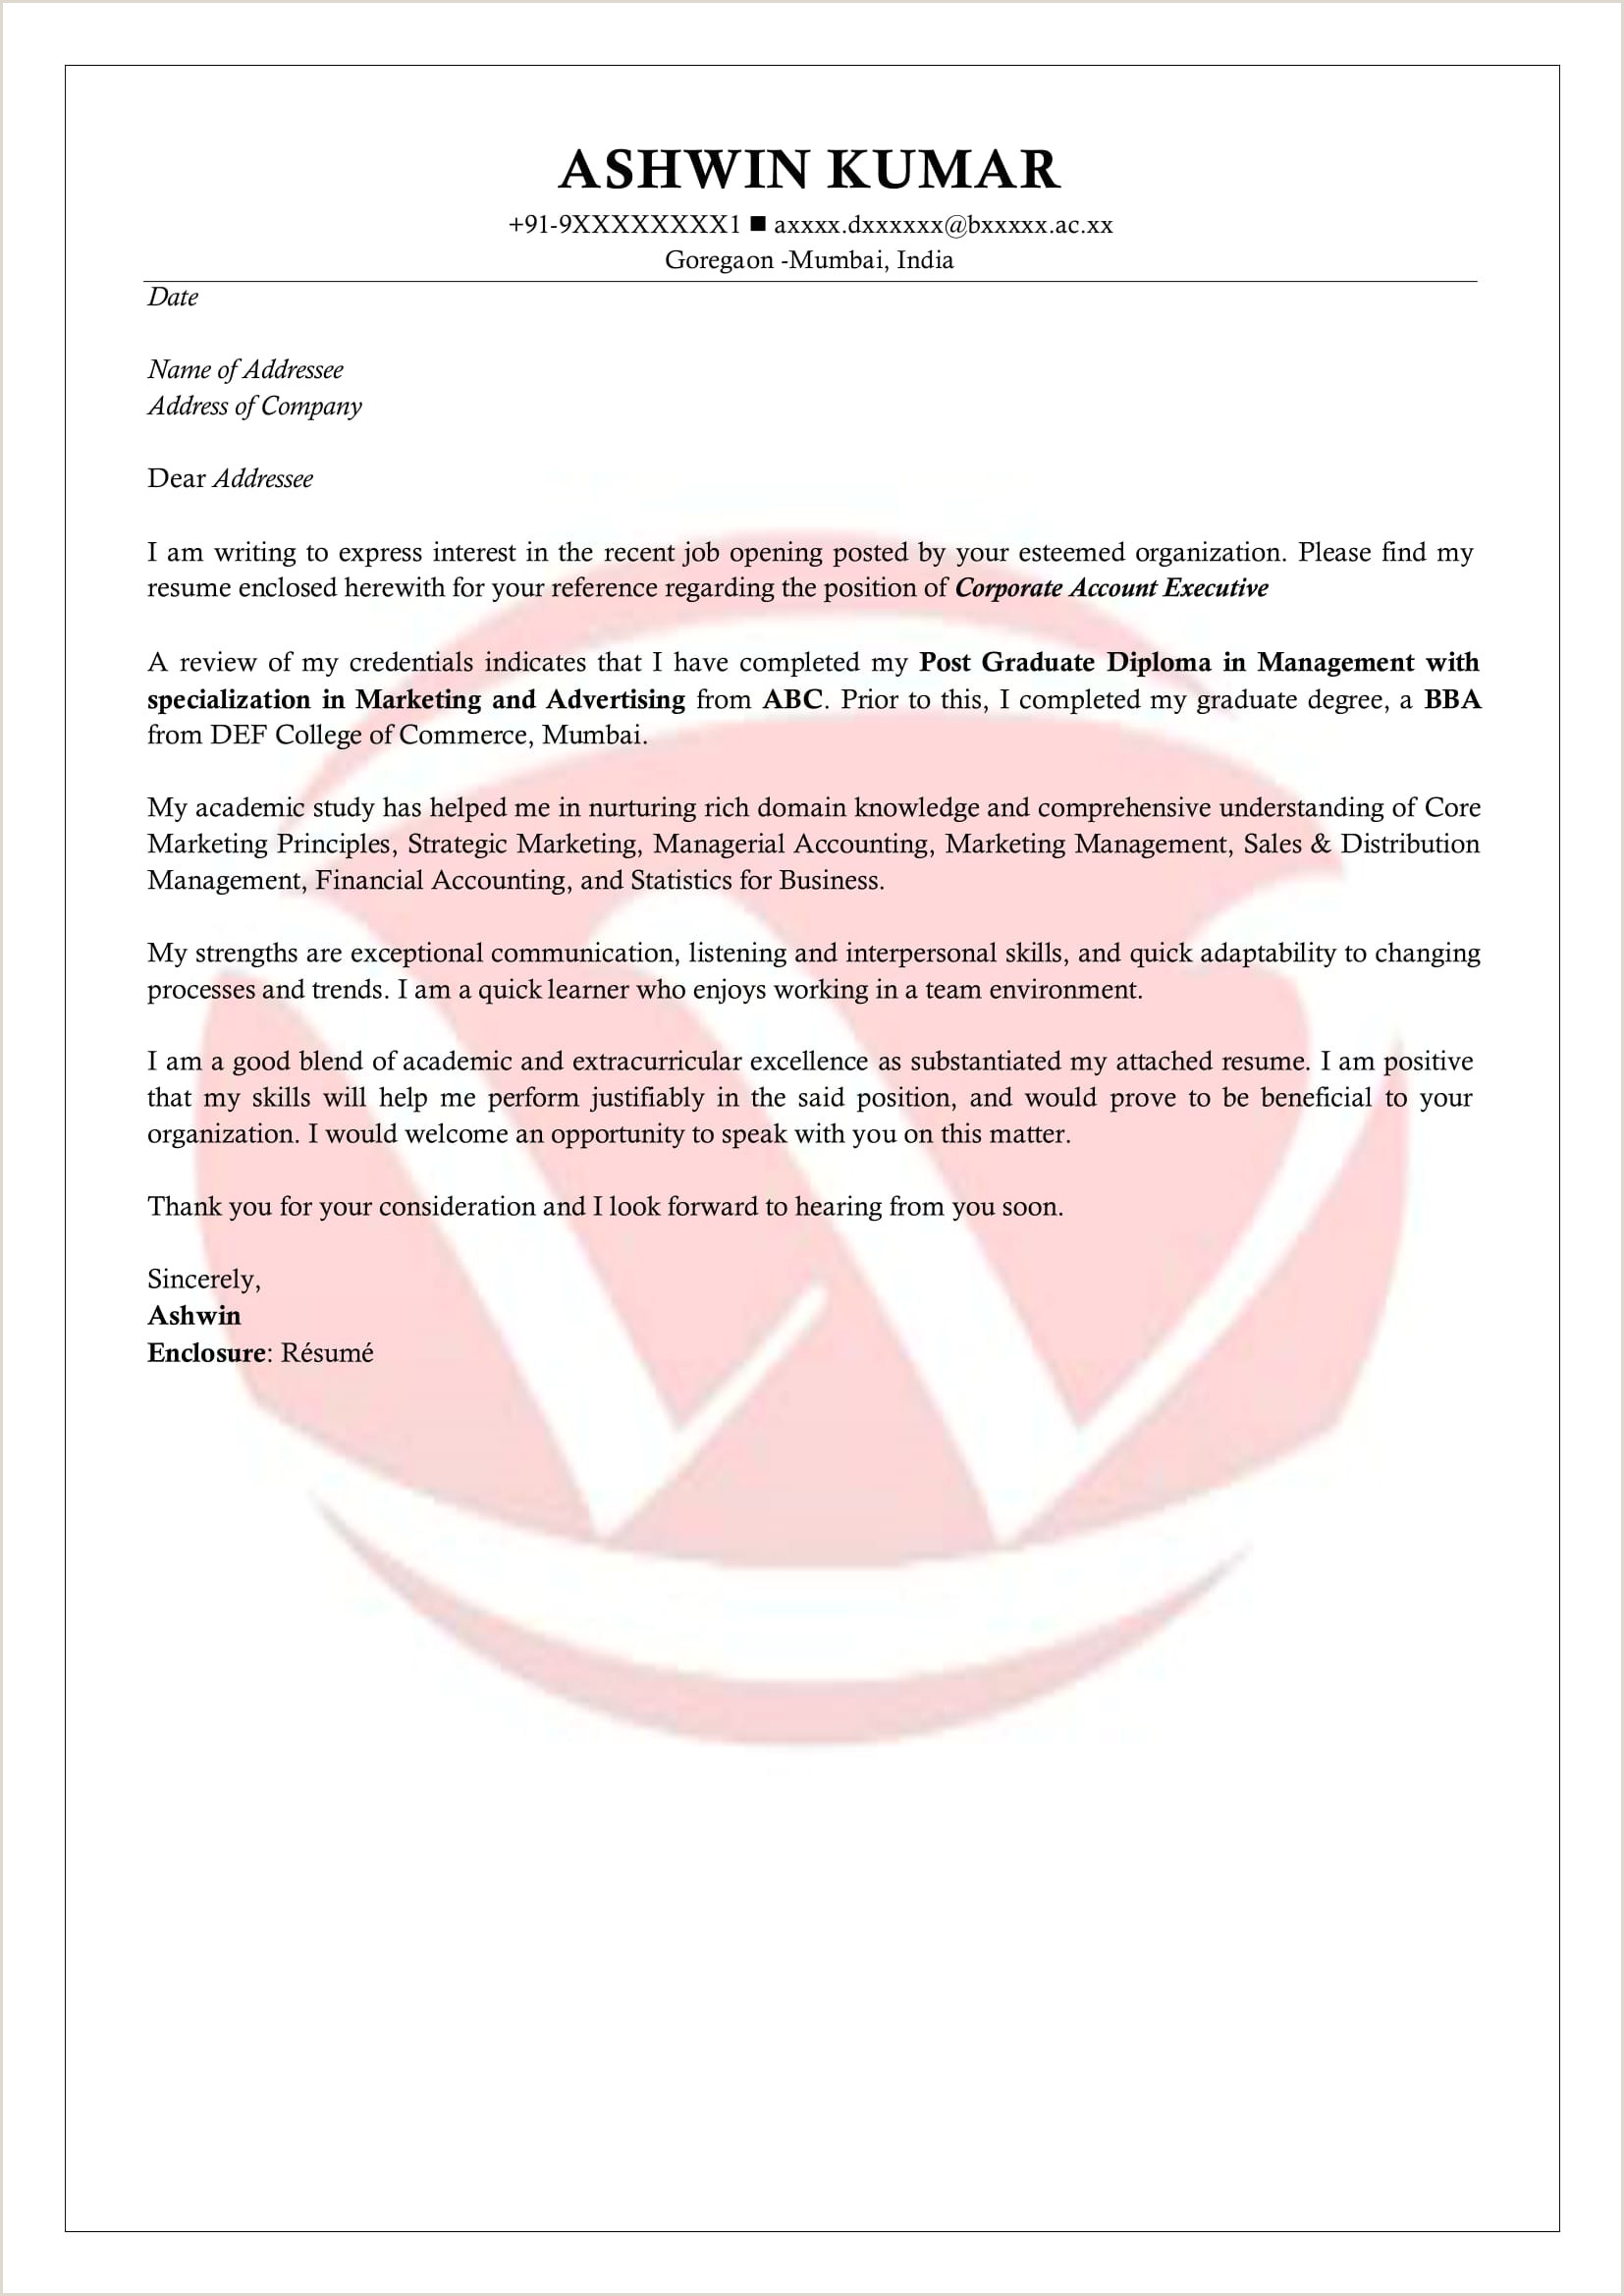 Cover Letter for Electrical Engineer Entry Level Freshers Sample Cover Letter format Download Cover Letter